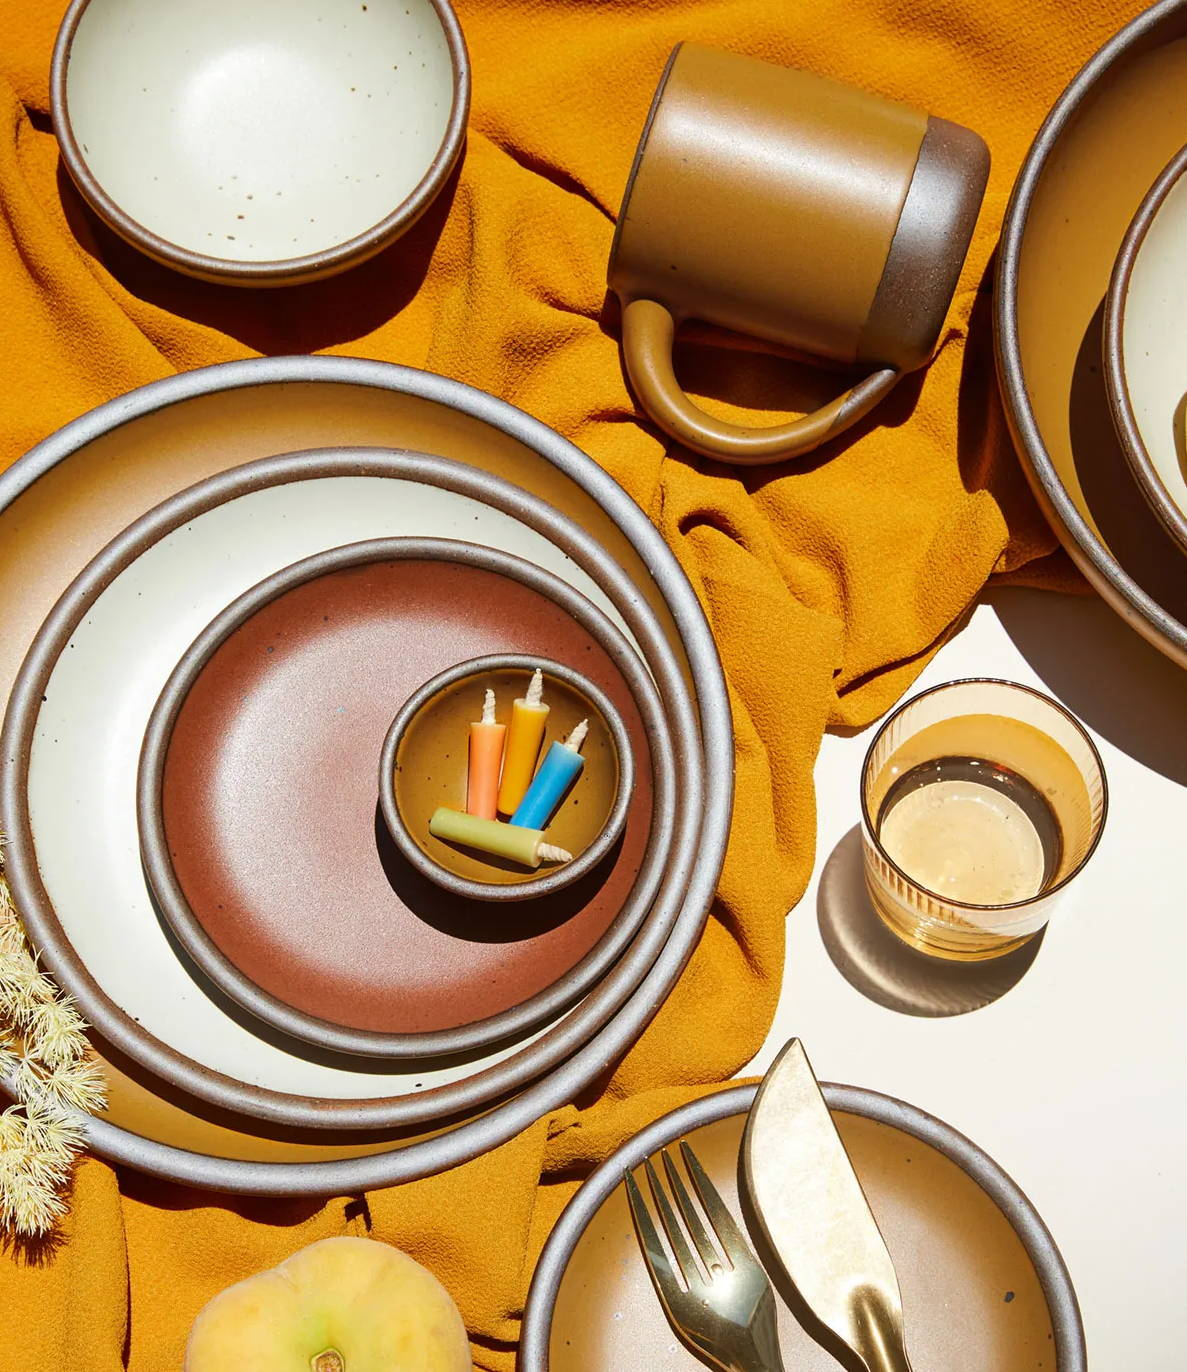 East Fork pottery and tabletop items